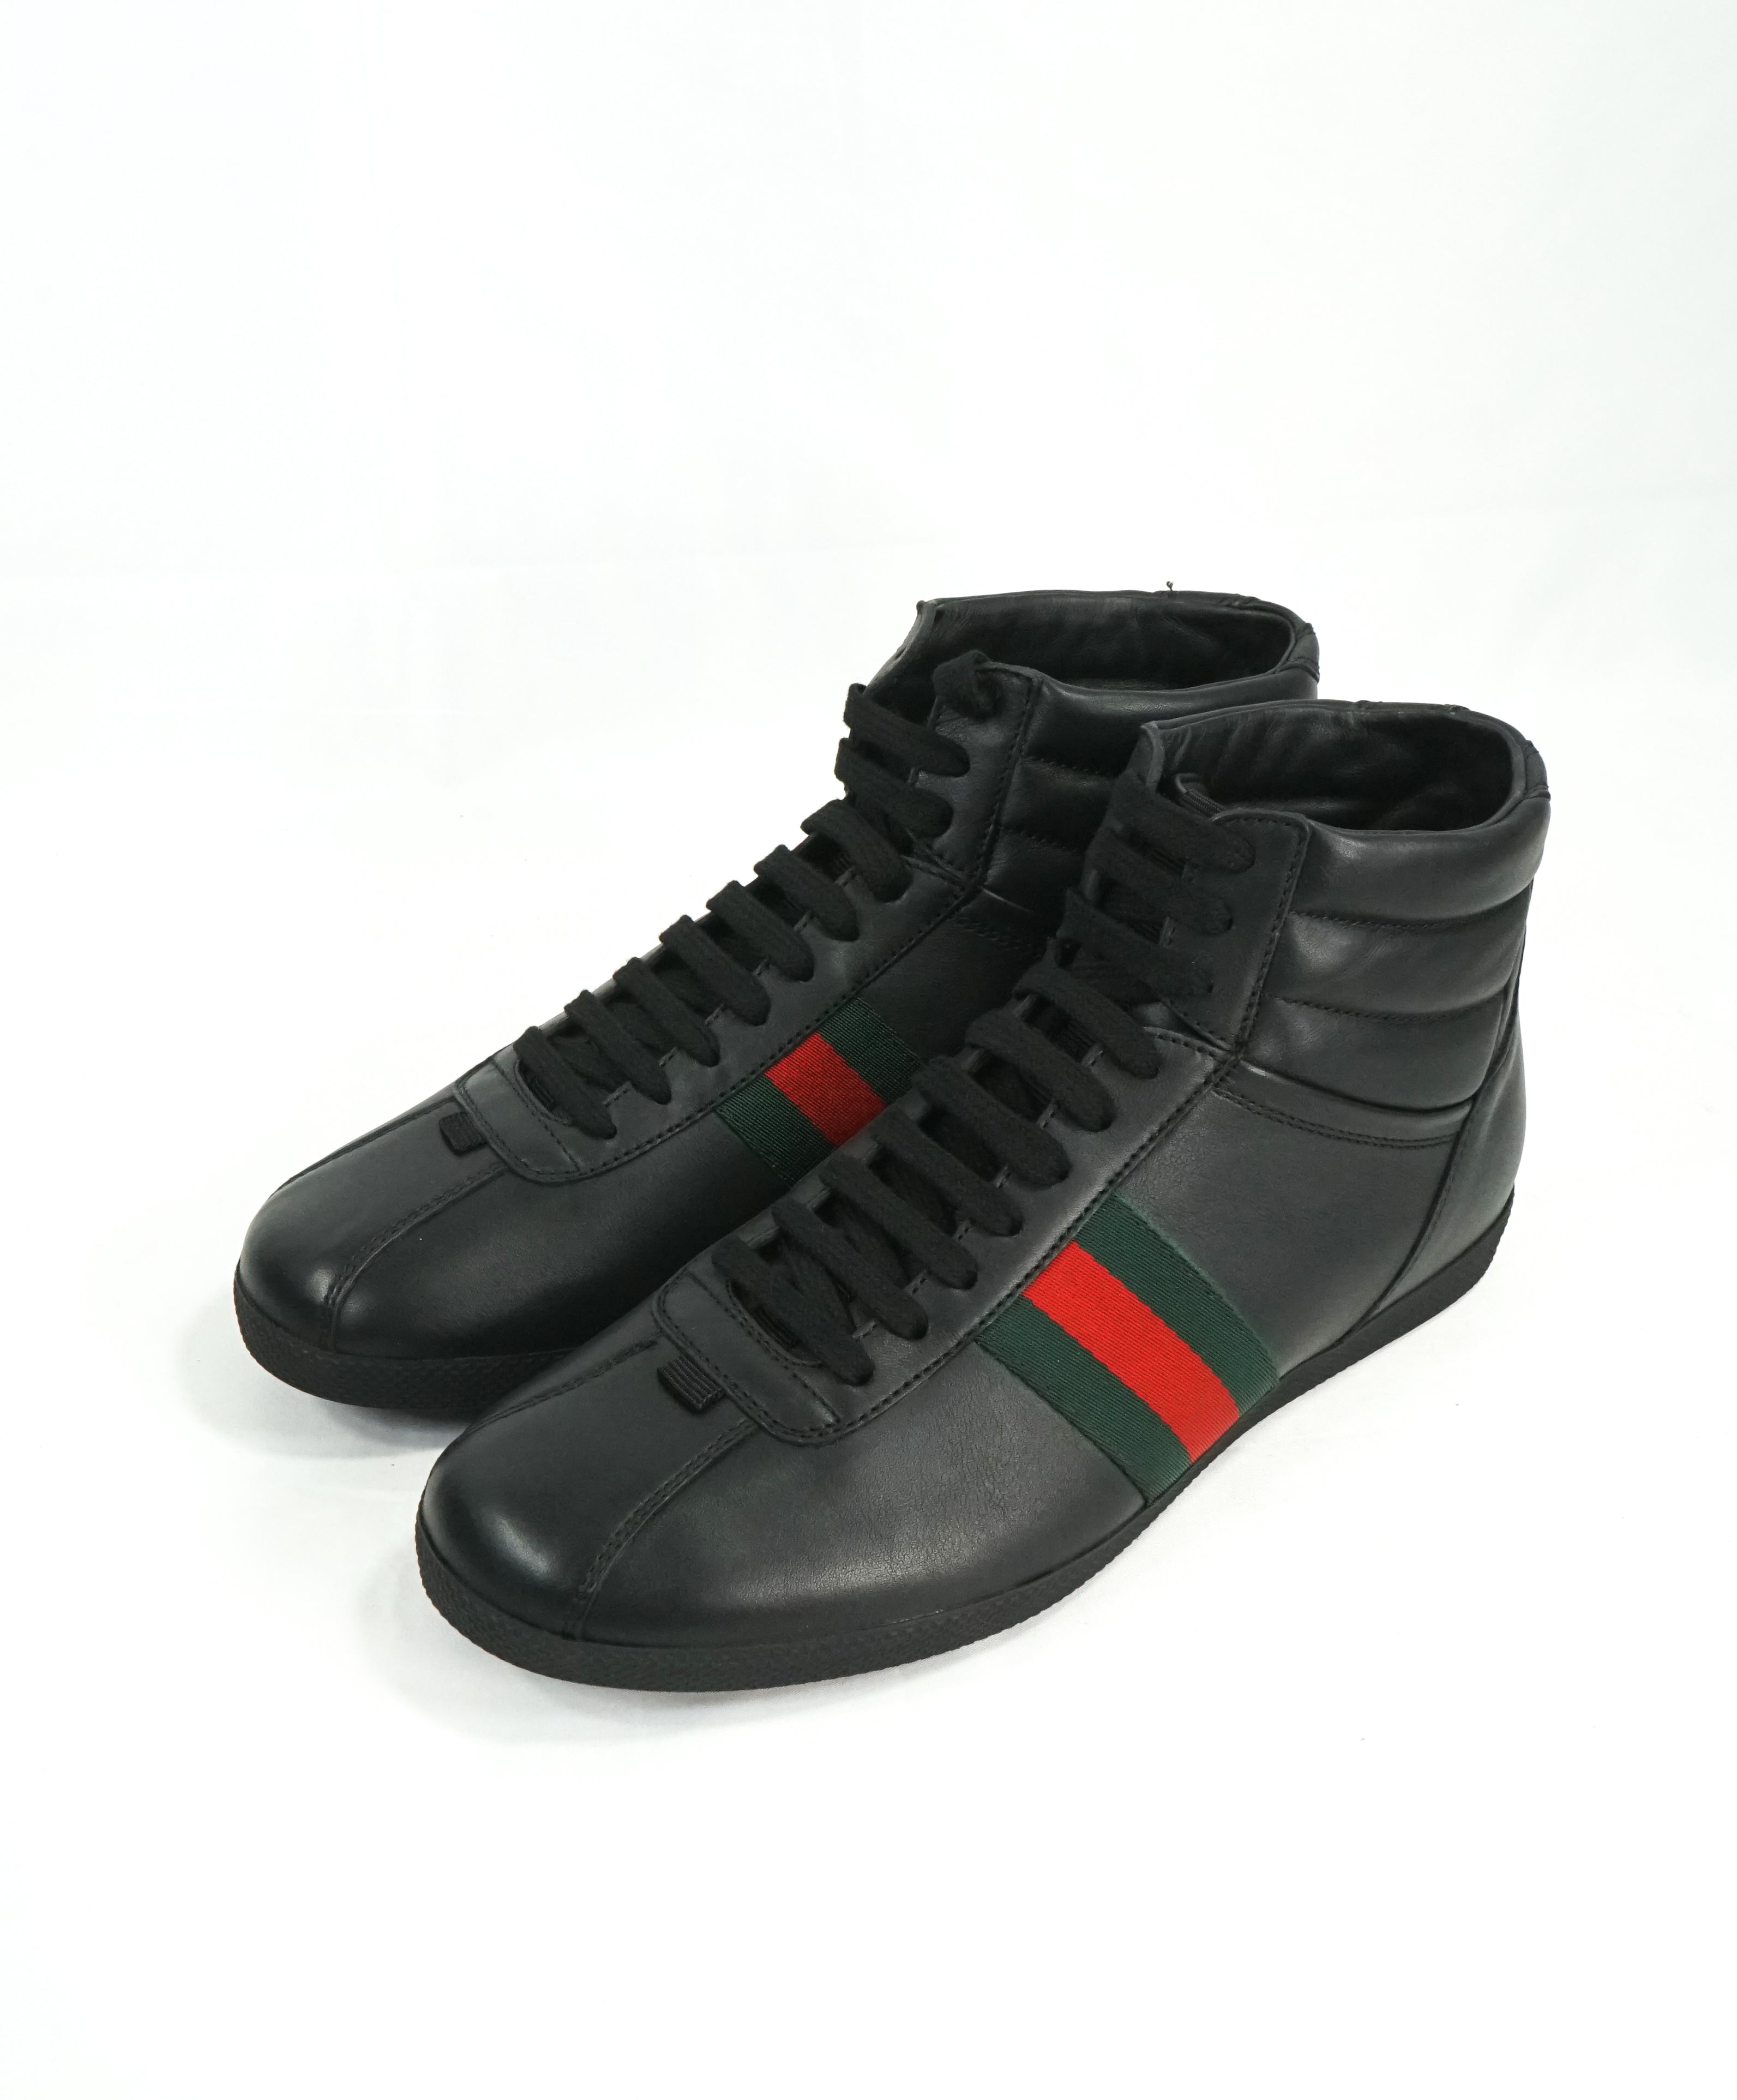 GUCCI -Red and Green Logo Stripe GG High Top Black Sneakers- 6G / 6.5 US